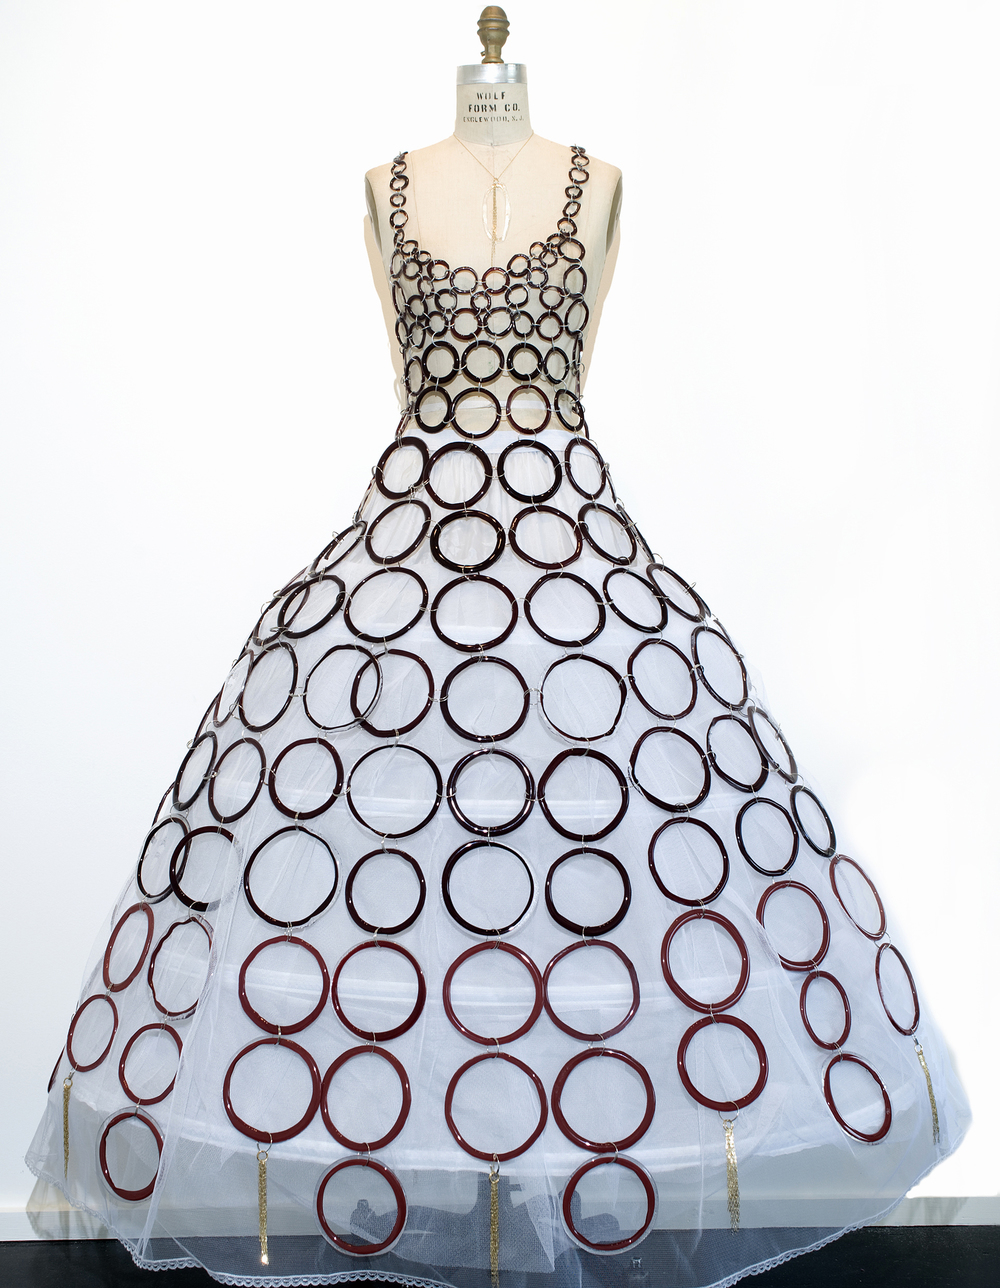 SCULPTURAL GLASS DRESS